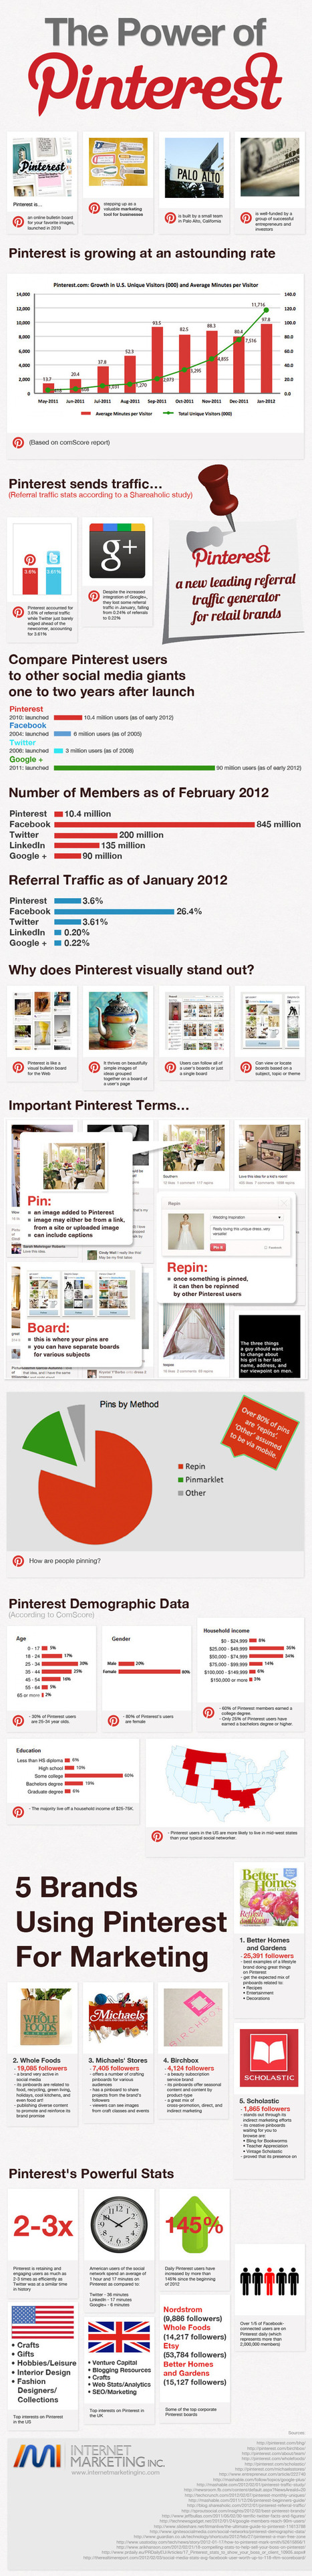 A Guide to Pinterest - Malhar Barai | Quick Social Media | Scoop.it